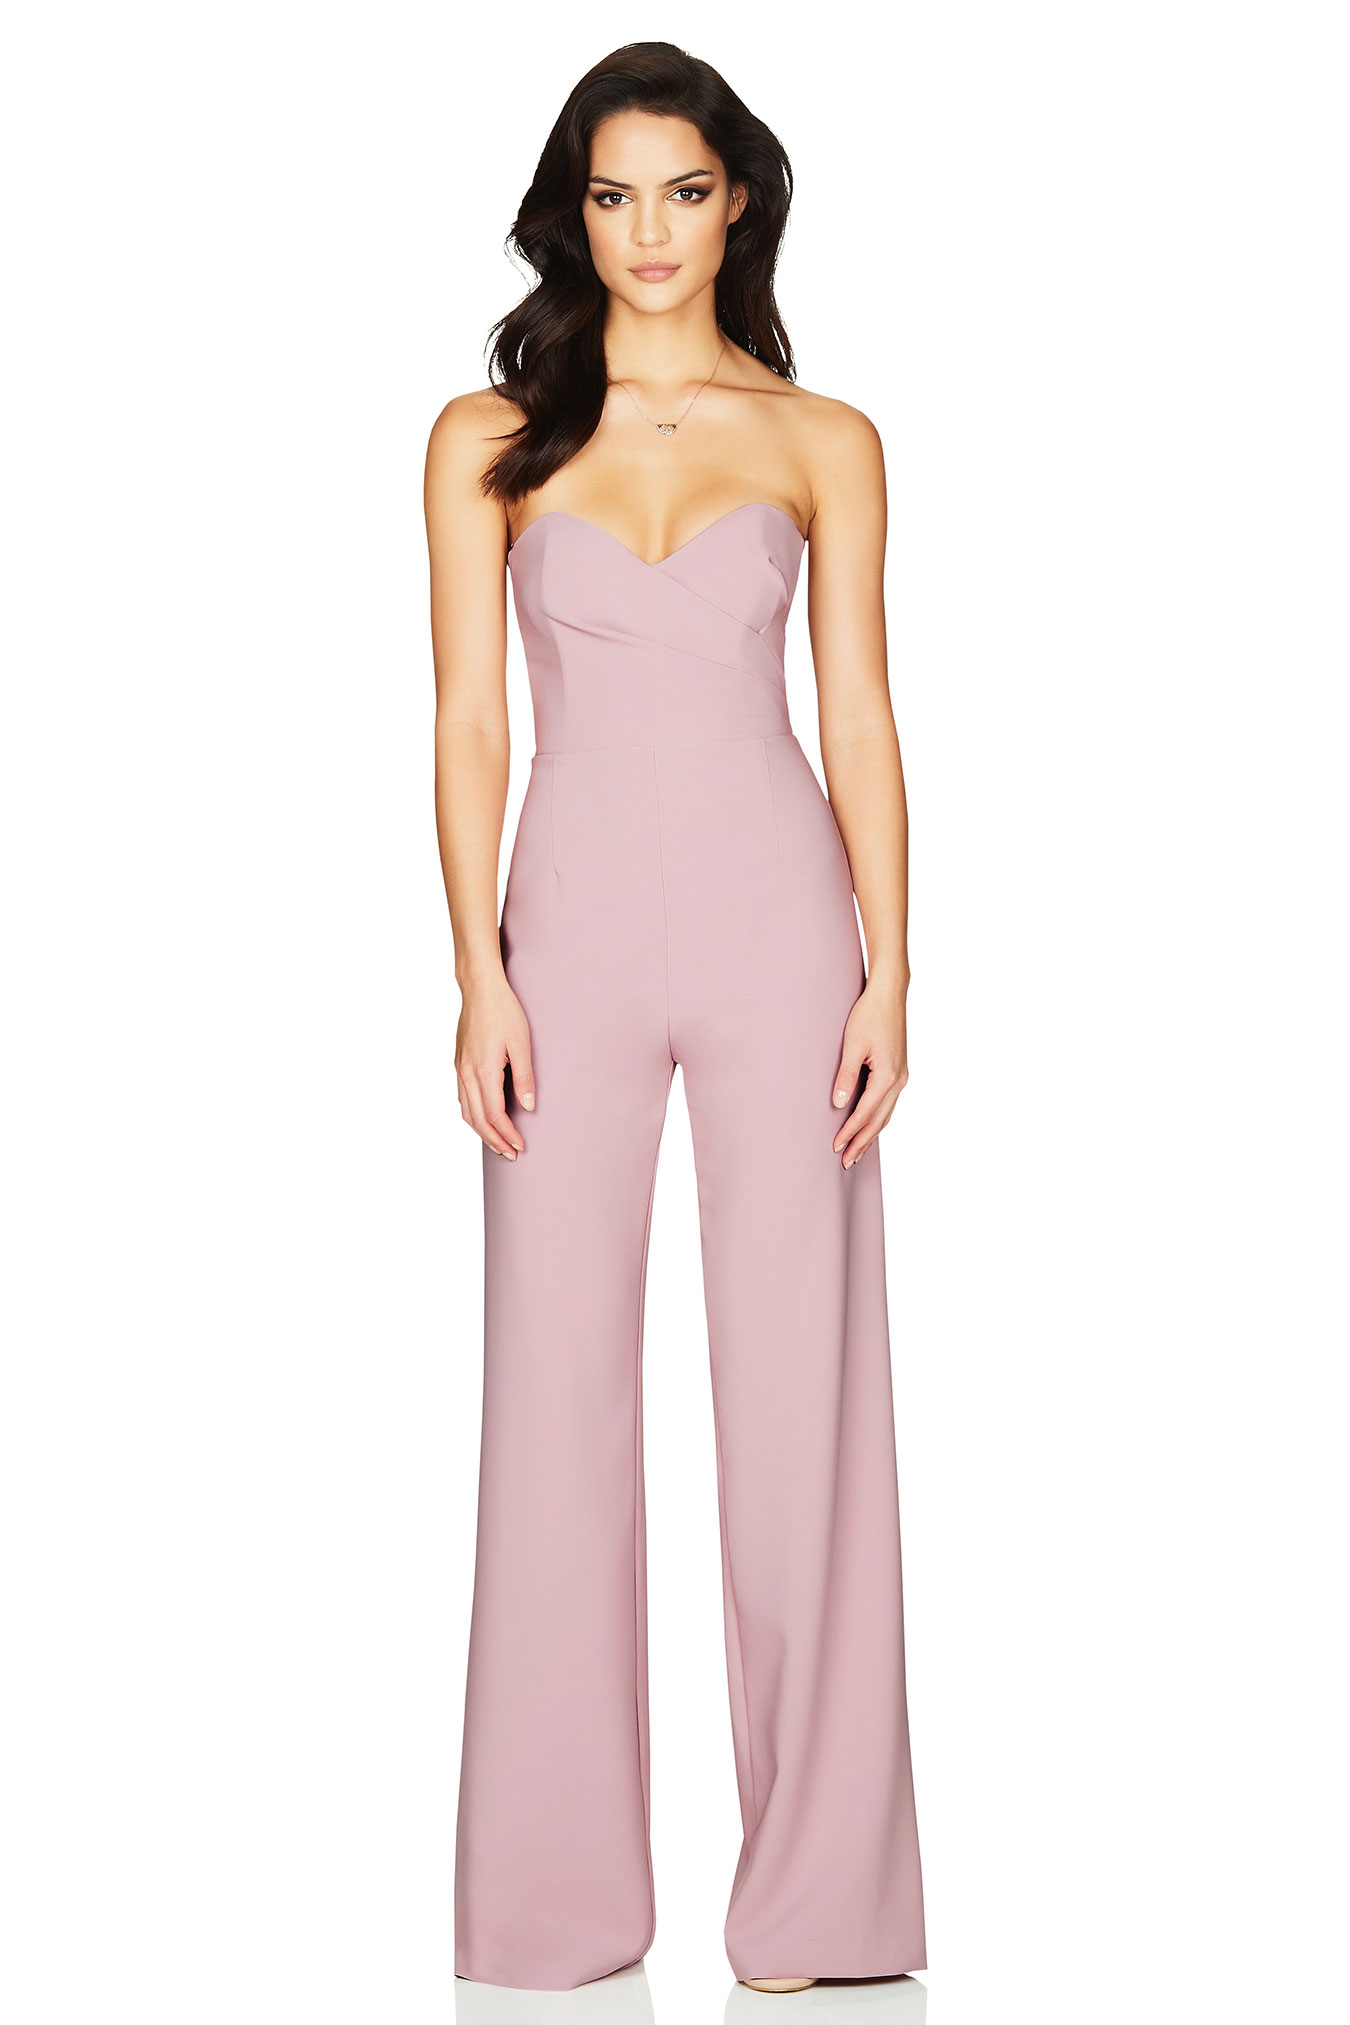 3f0f67a6b8d5 Dusty Pink Bisous Jumpsuit   Buy Designer Dresses Online at Nookie